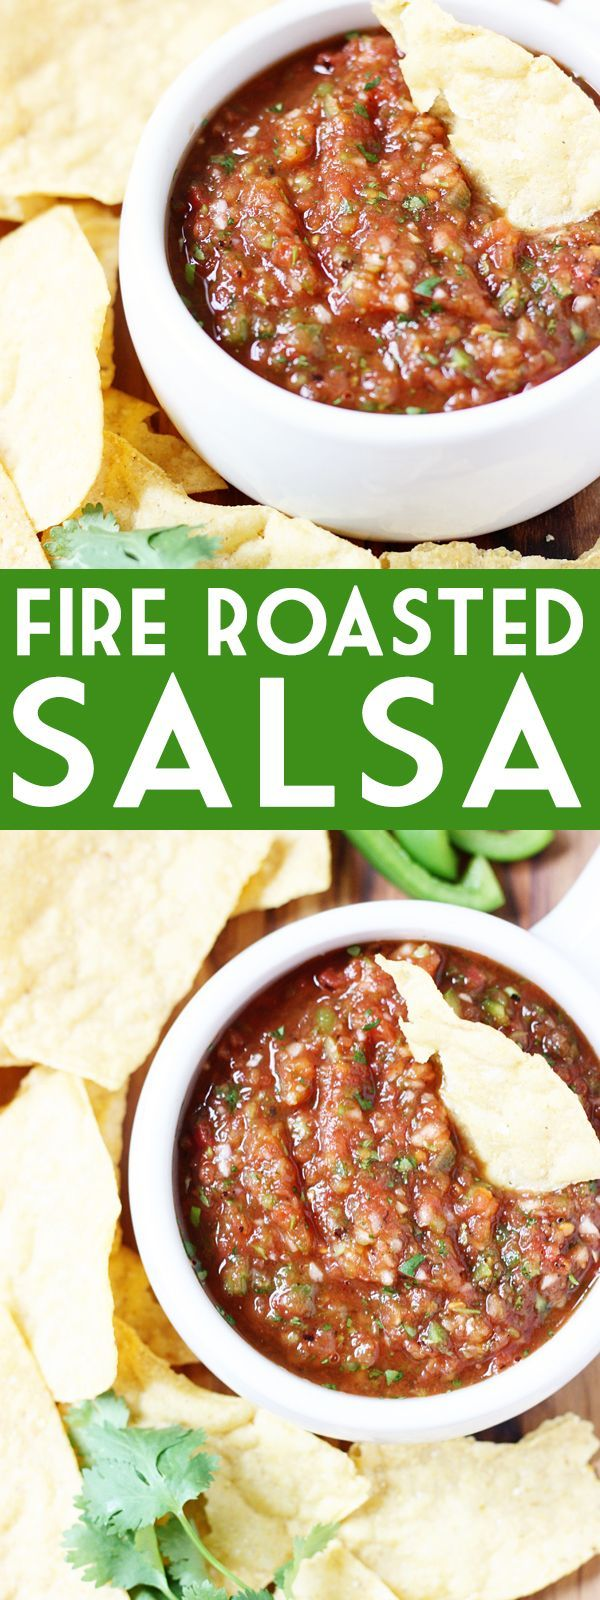 Fire Roasted Salsa Recipe - This fire roasted salsa is one of my all-time favorite homemade salsa recipes and reminiscent of your favorite restaurant salsa! | isthisreallymylife.com